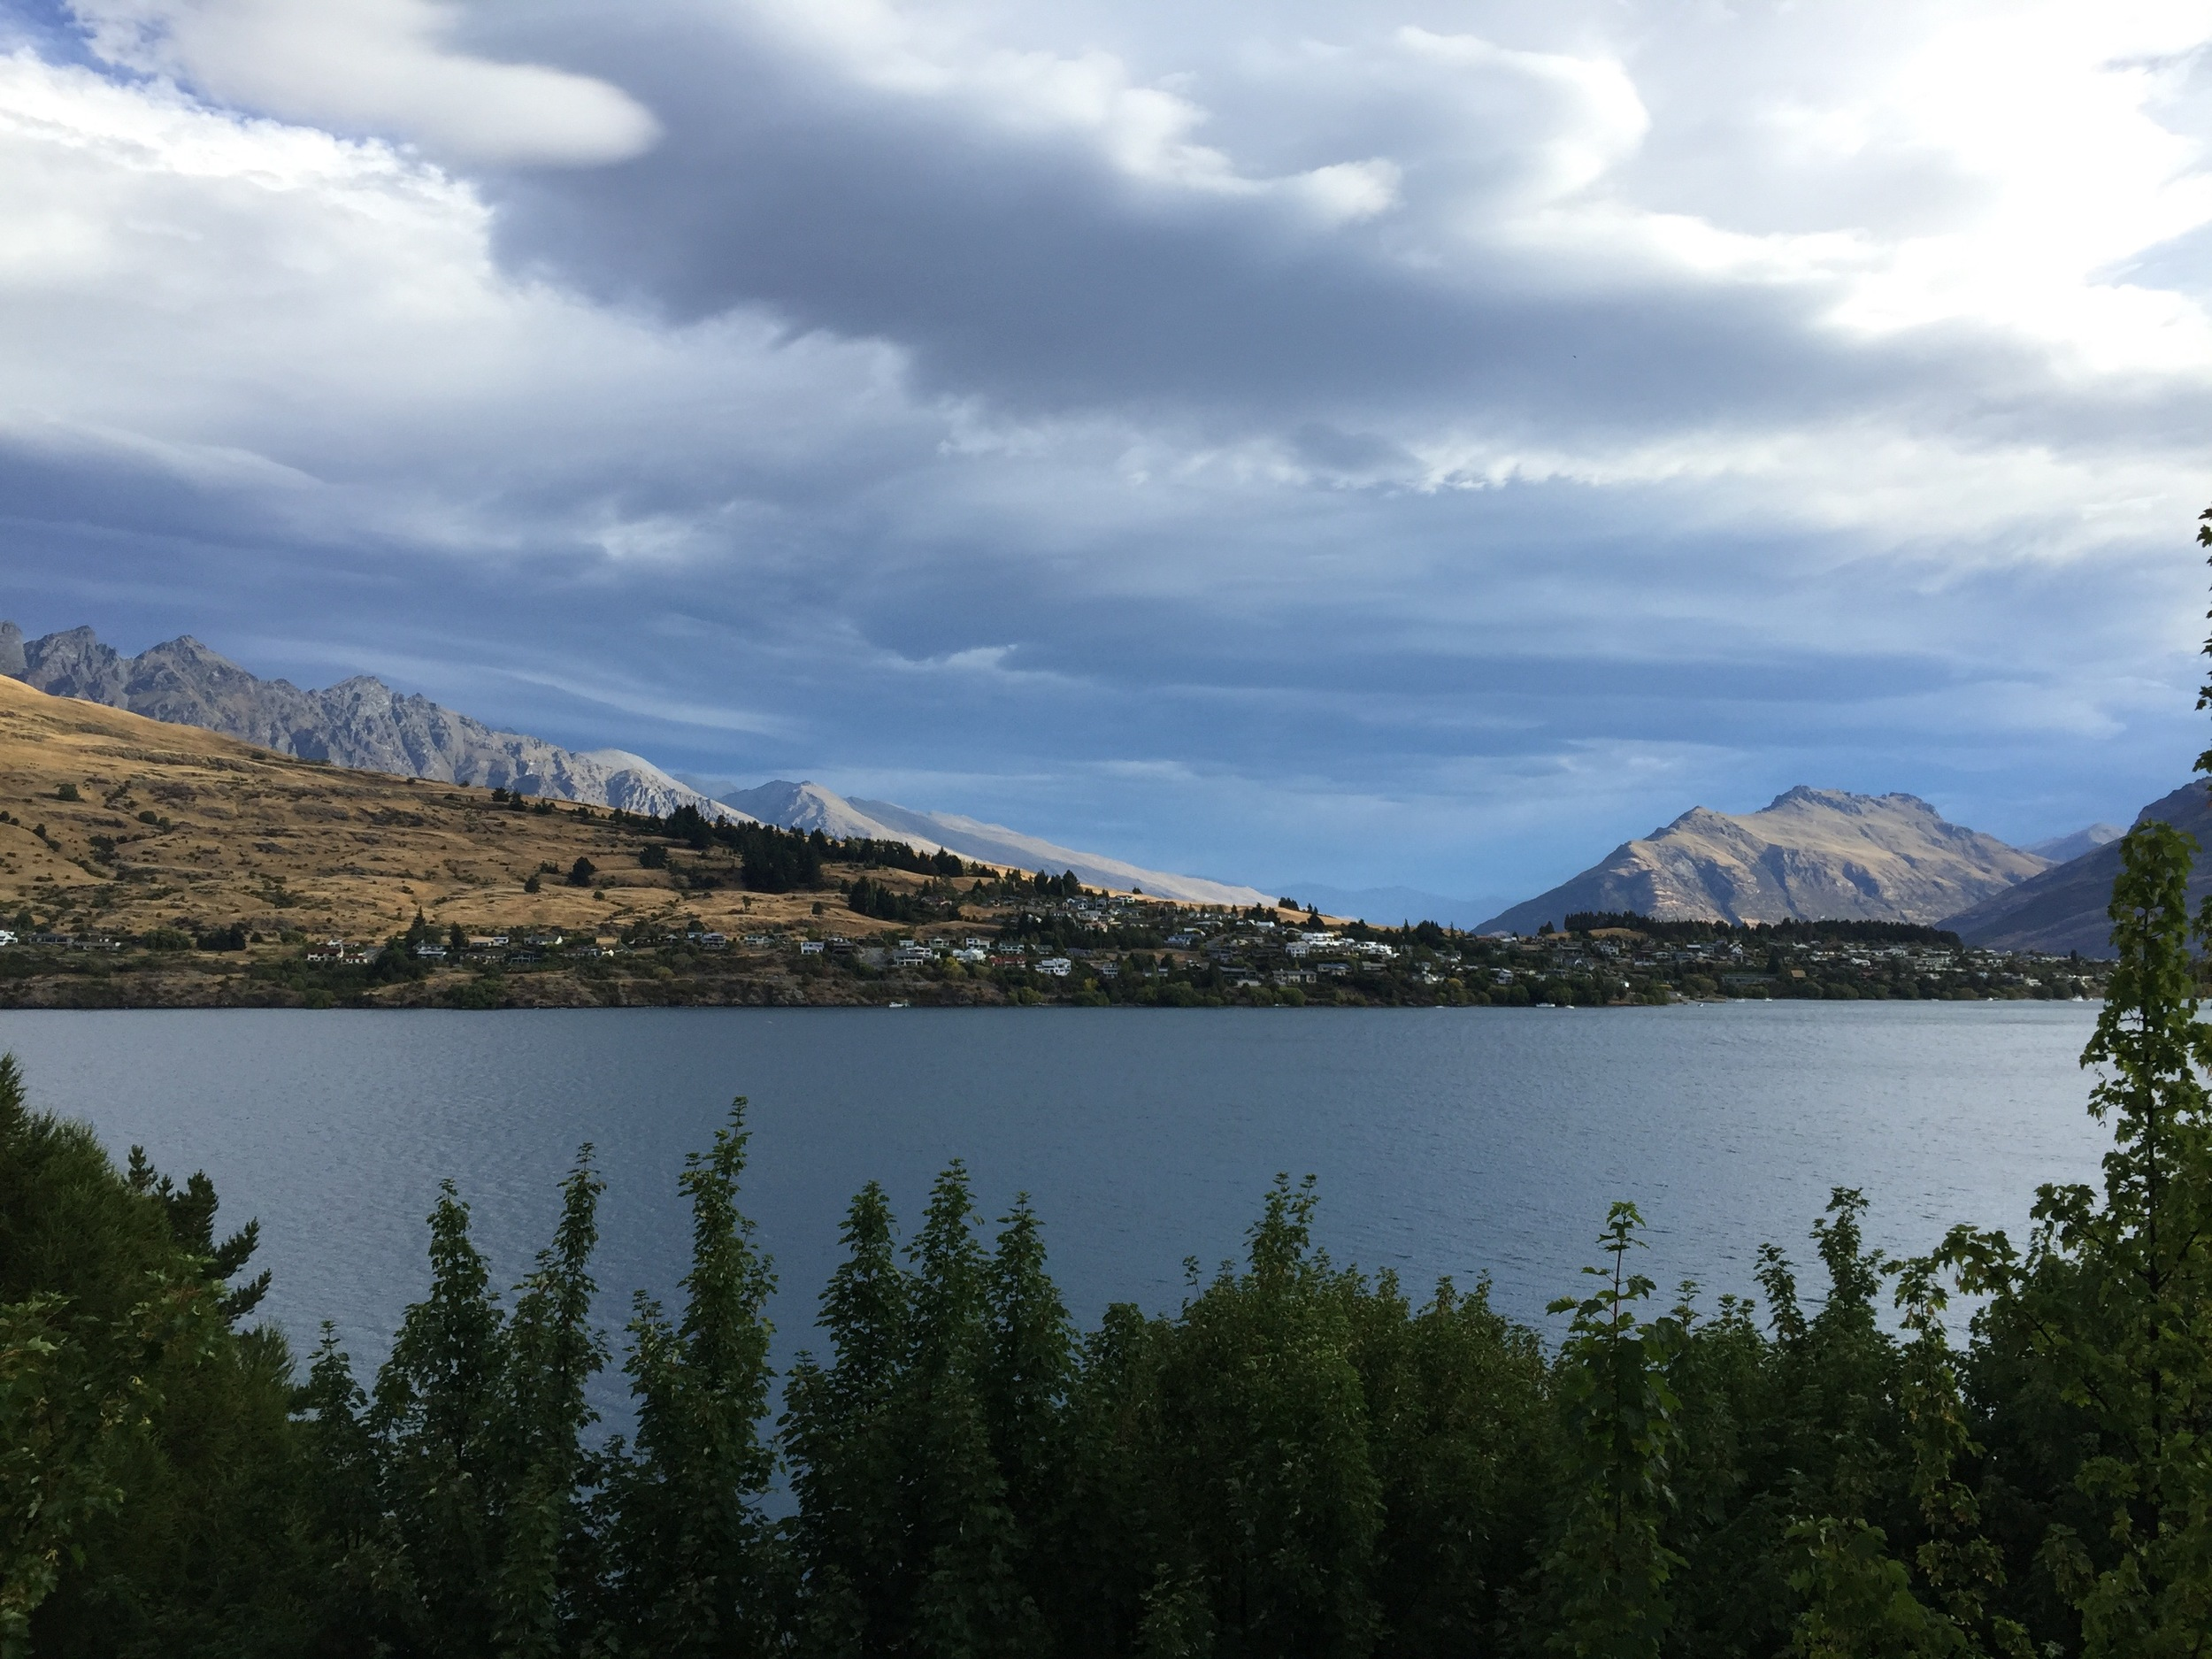 Looking across Lake Wakatipu to Queenstown from Frankton Rd., where the Sherwood Hotel is located.